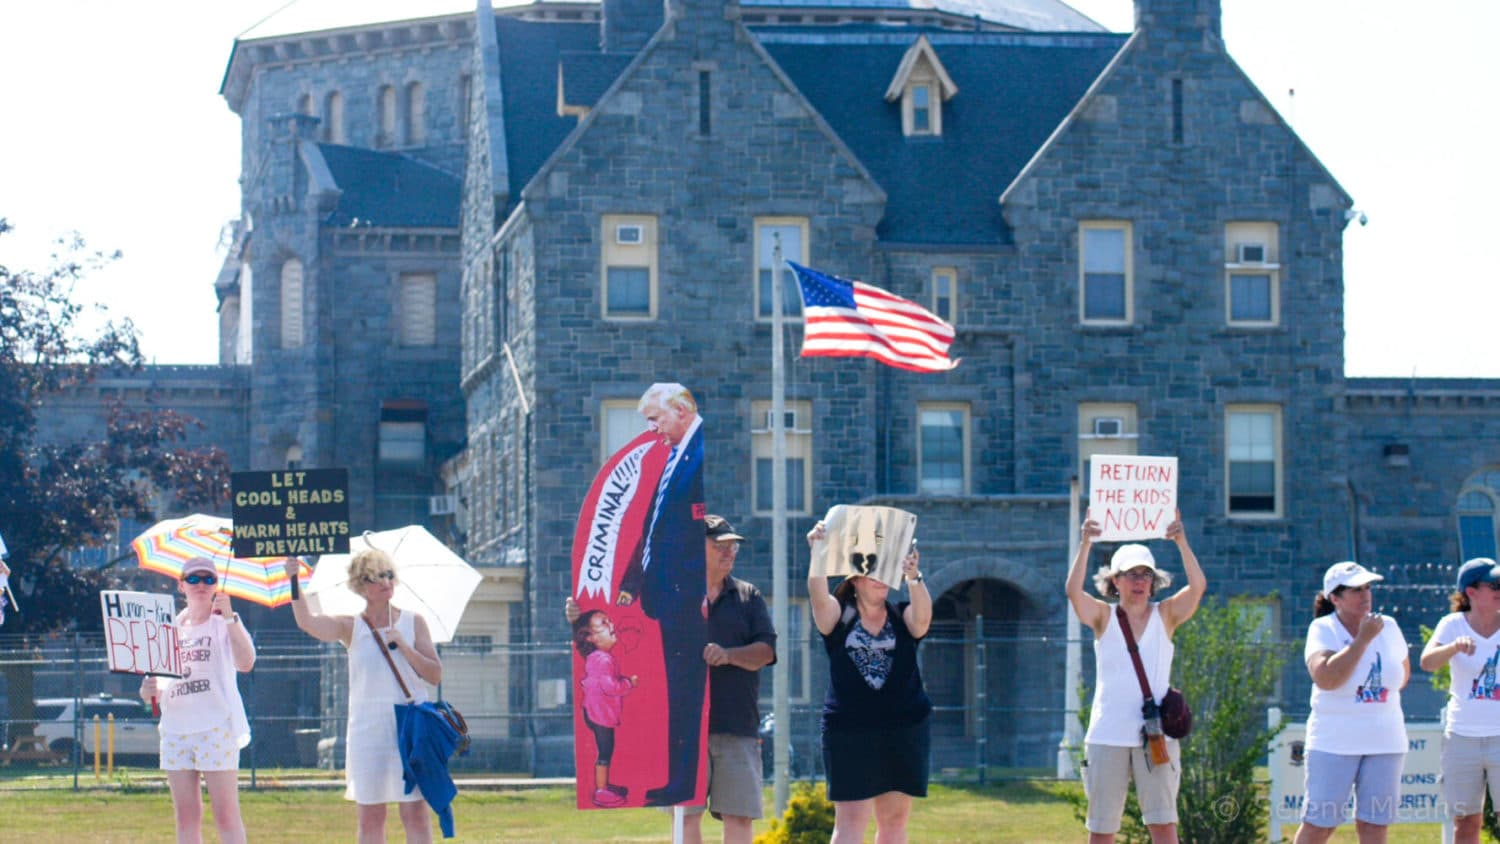 Photo for Selene Means – Photos from End All Family Separation rally in Cranston